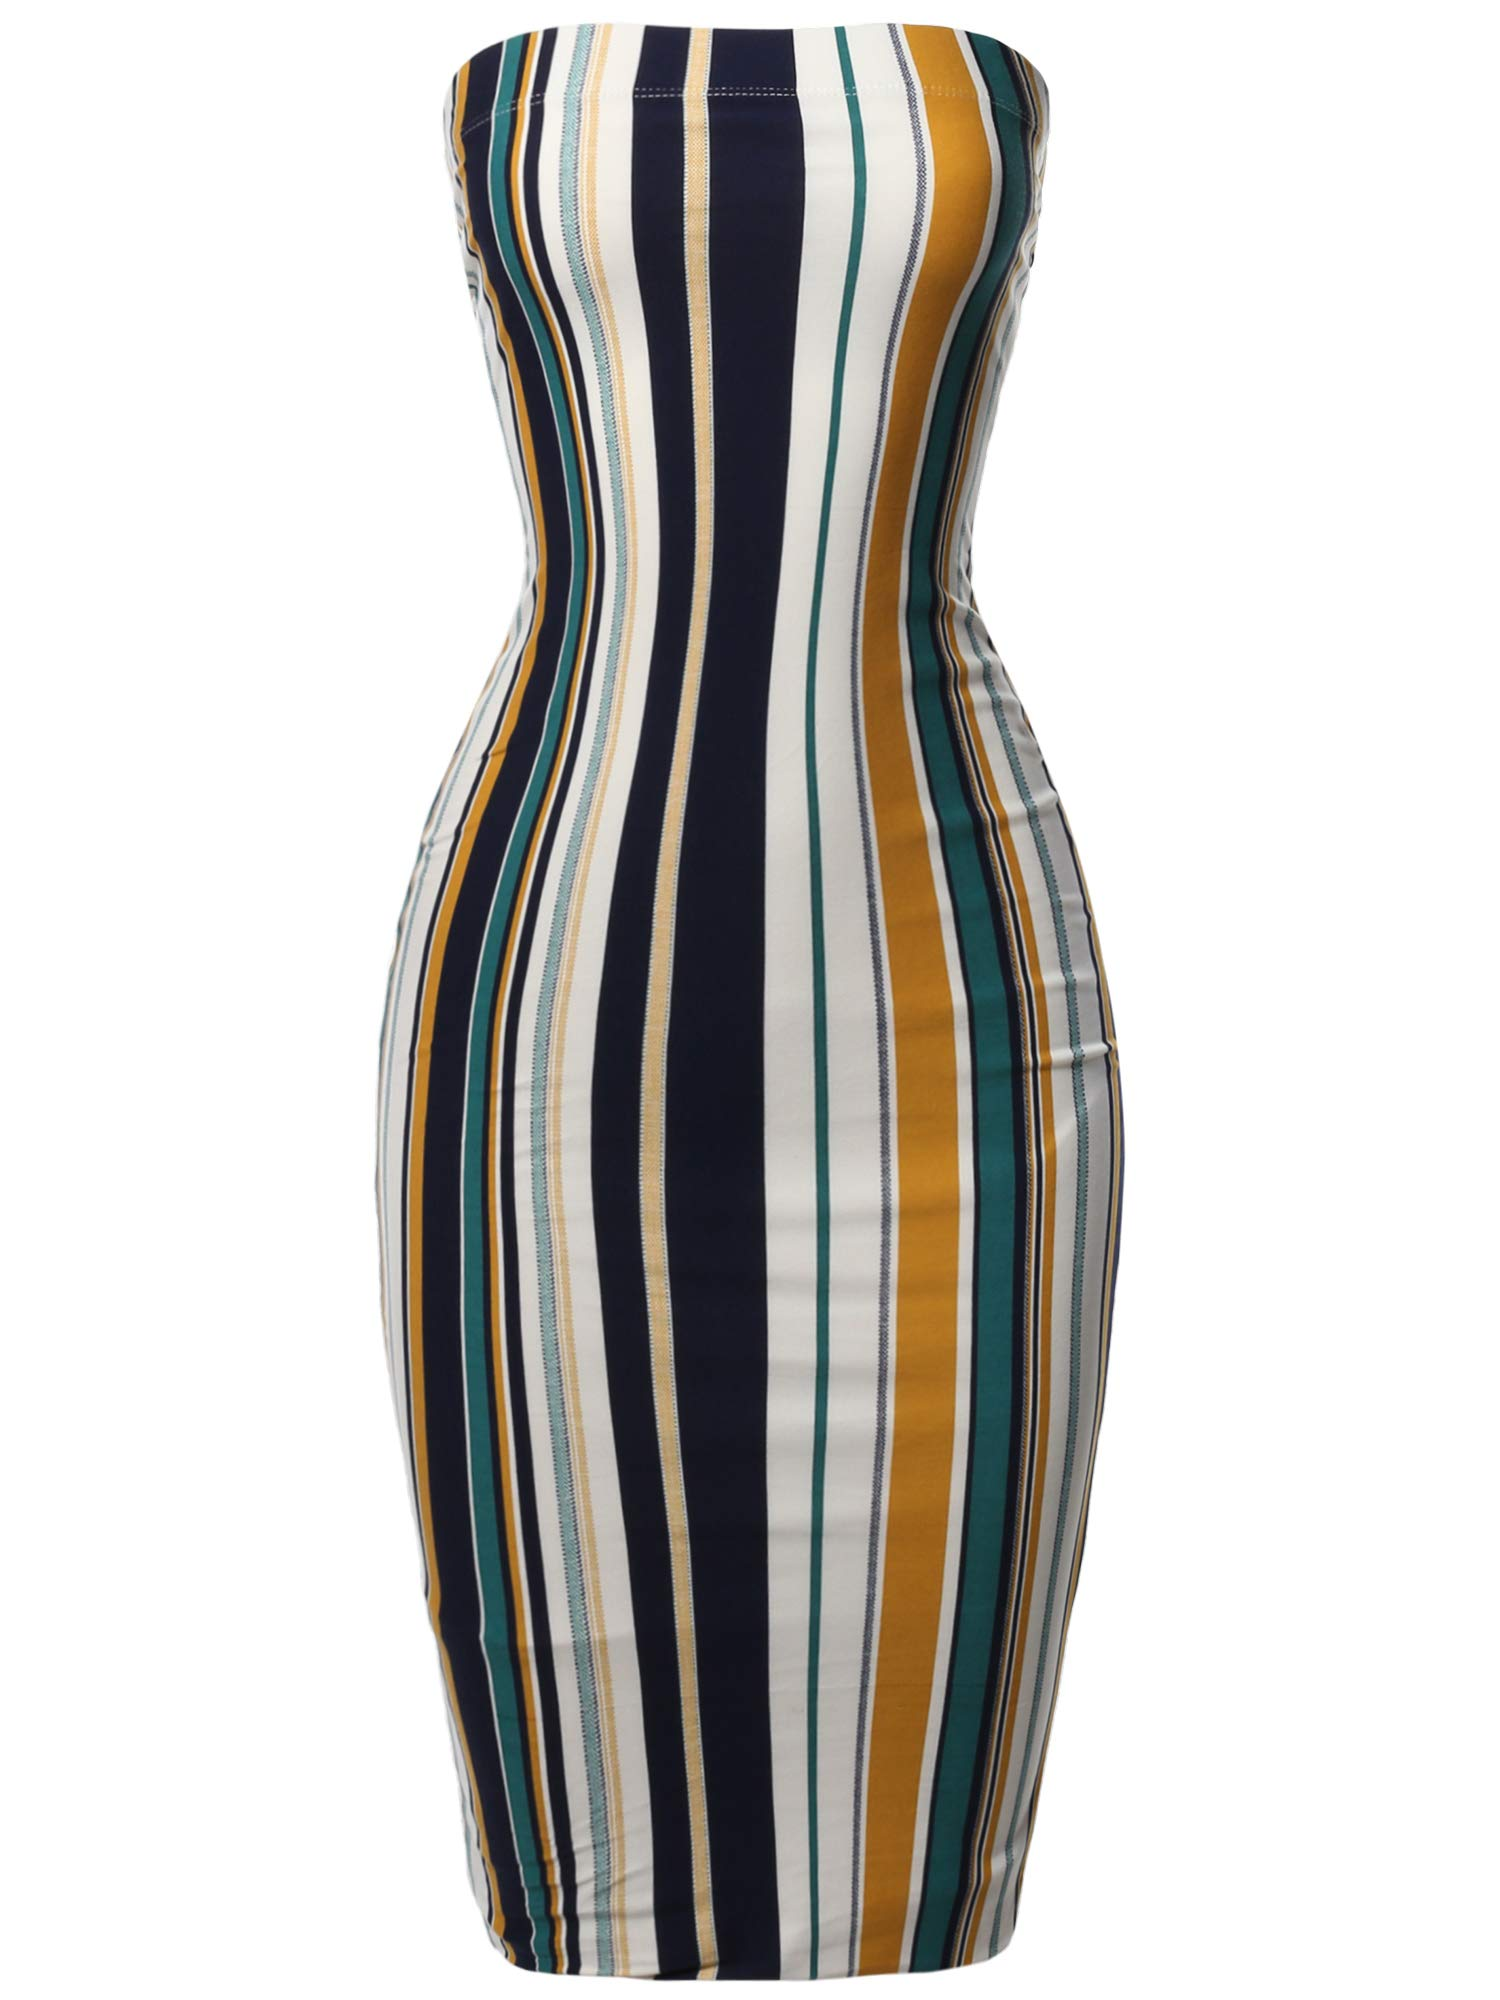 Made by Emma Super Sexy Comfortable Tube Top Bodycon Vertical Strips Midi Dress 3XL